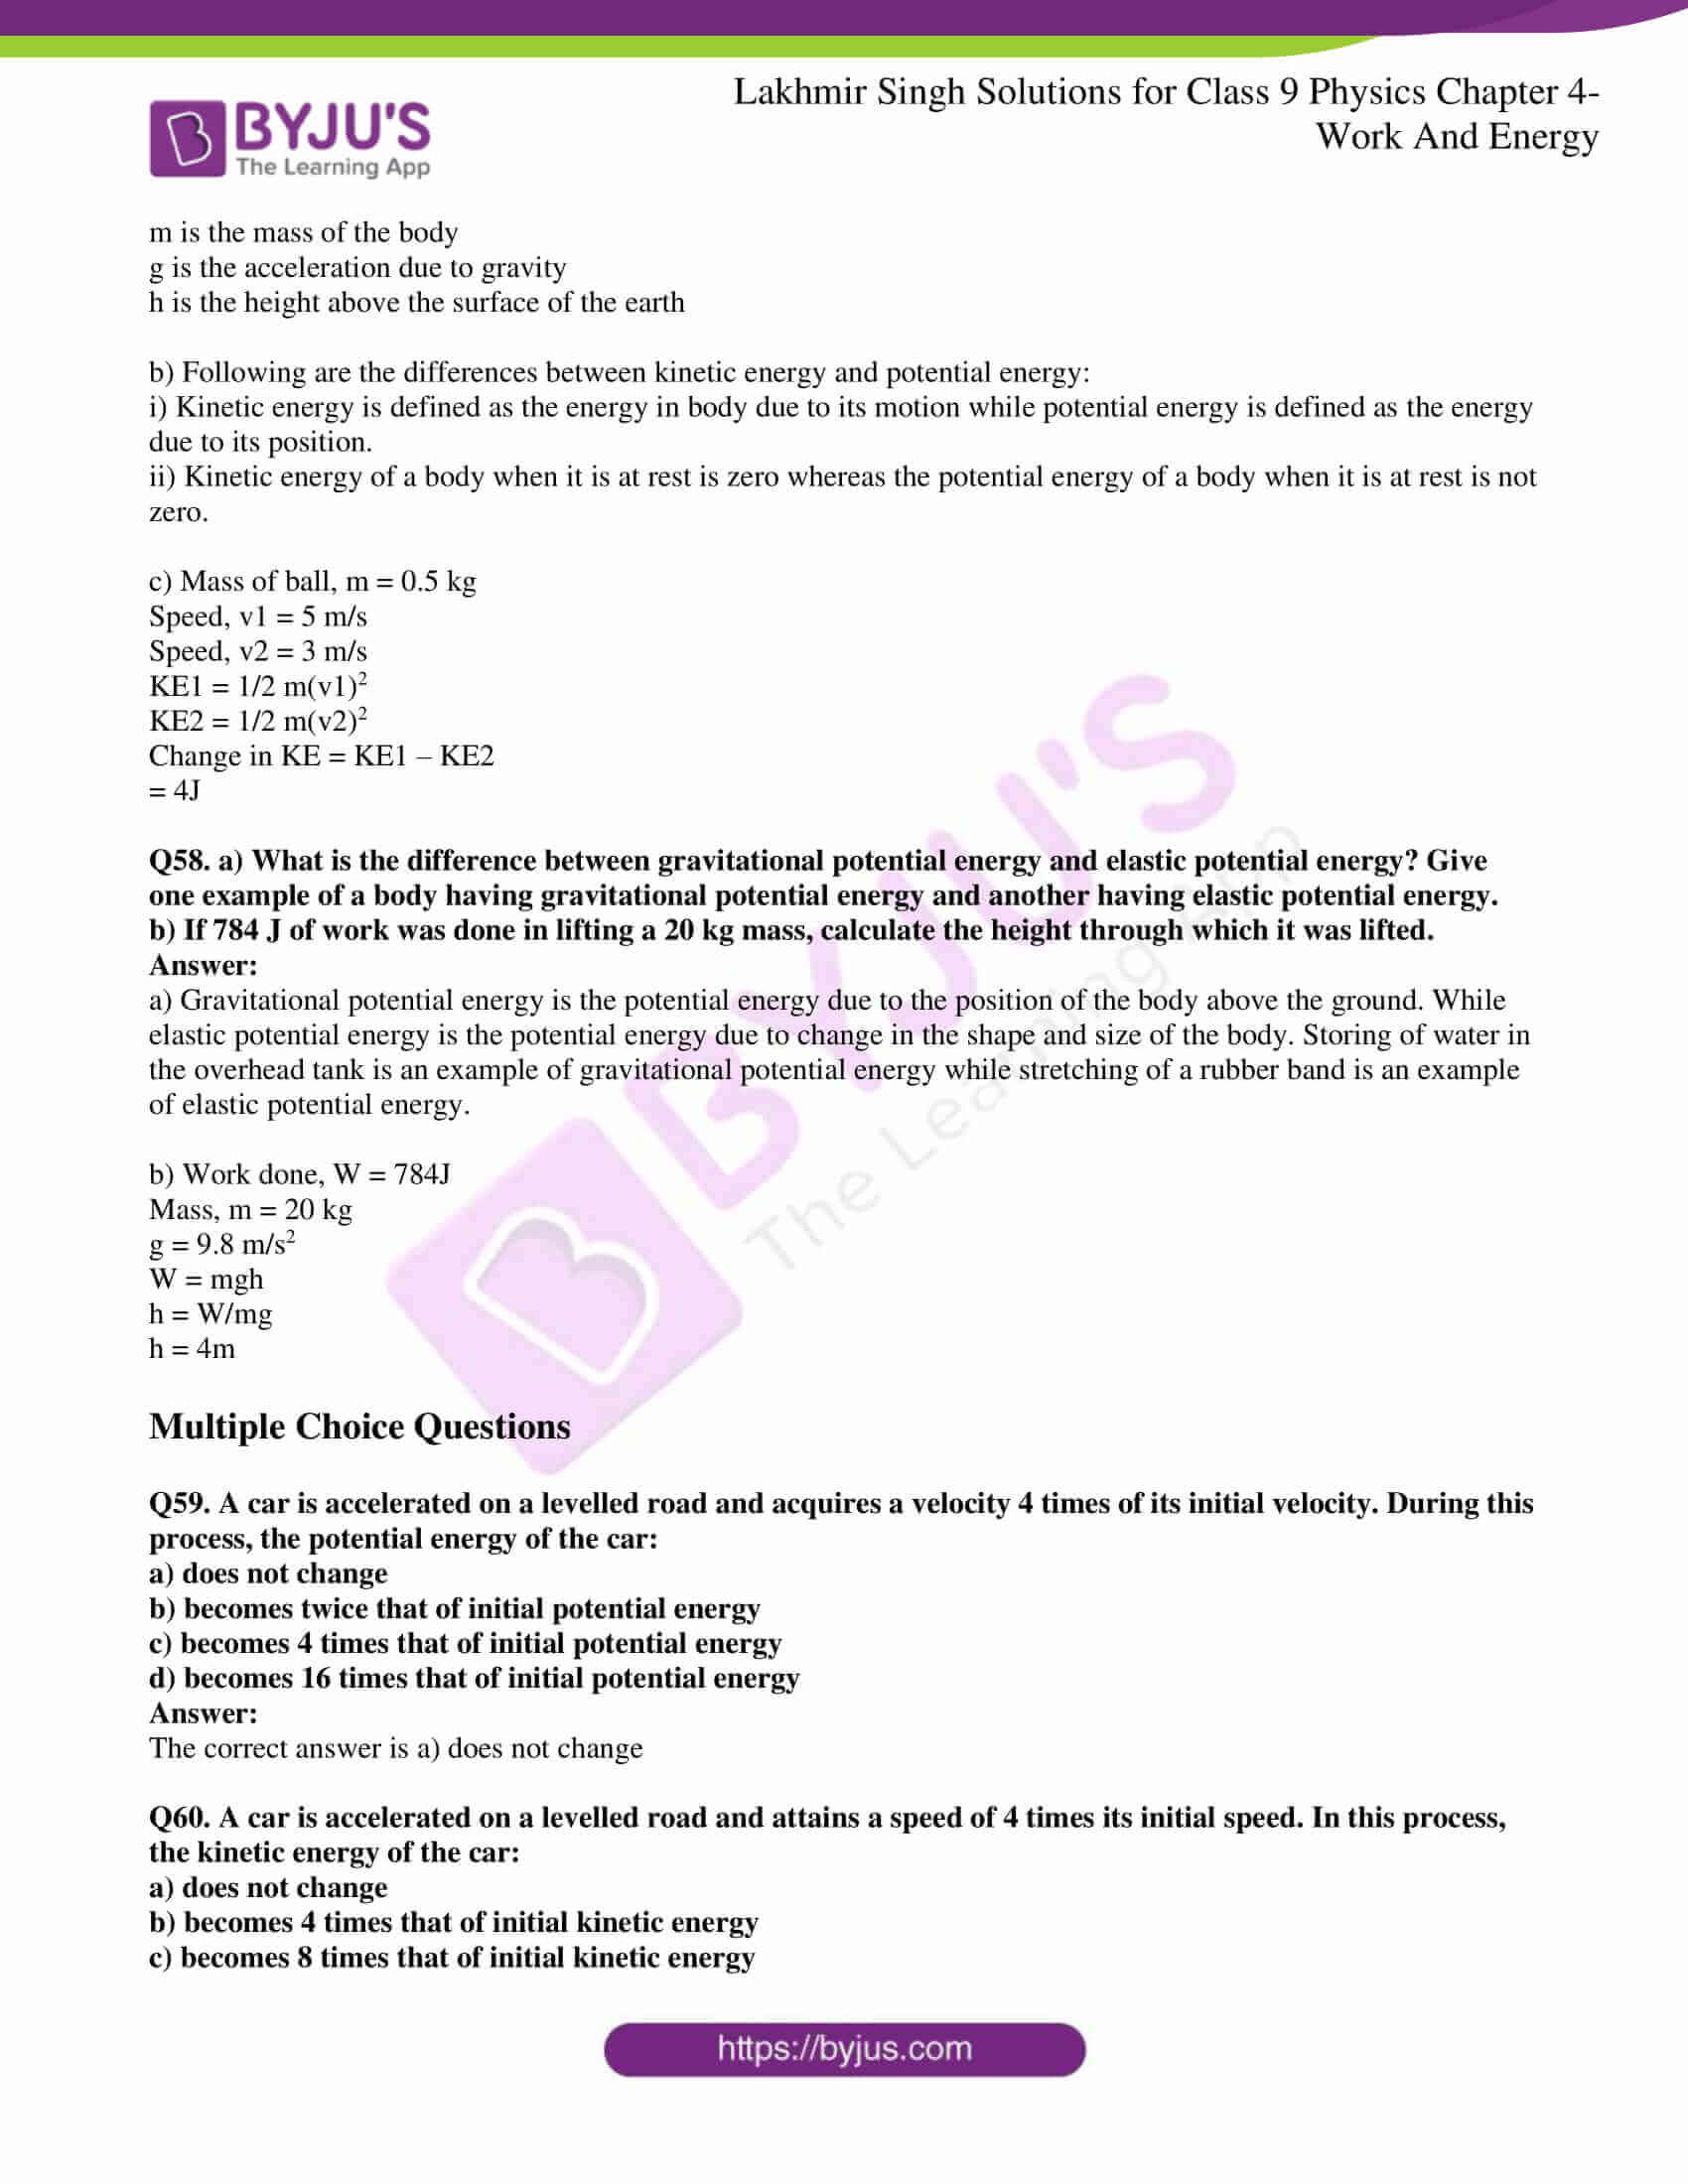 lakhmir singh solutions class 9 physics chapter 4 12